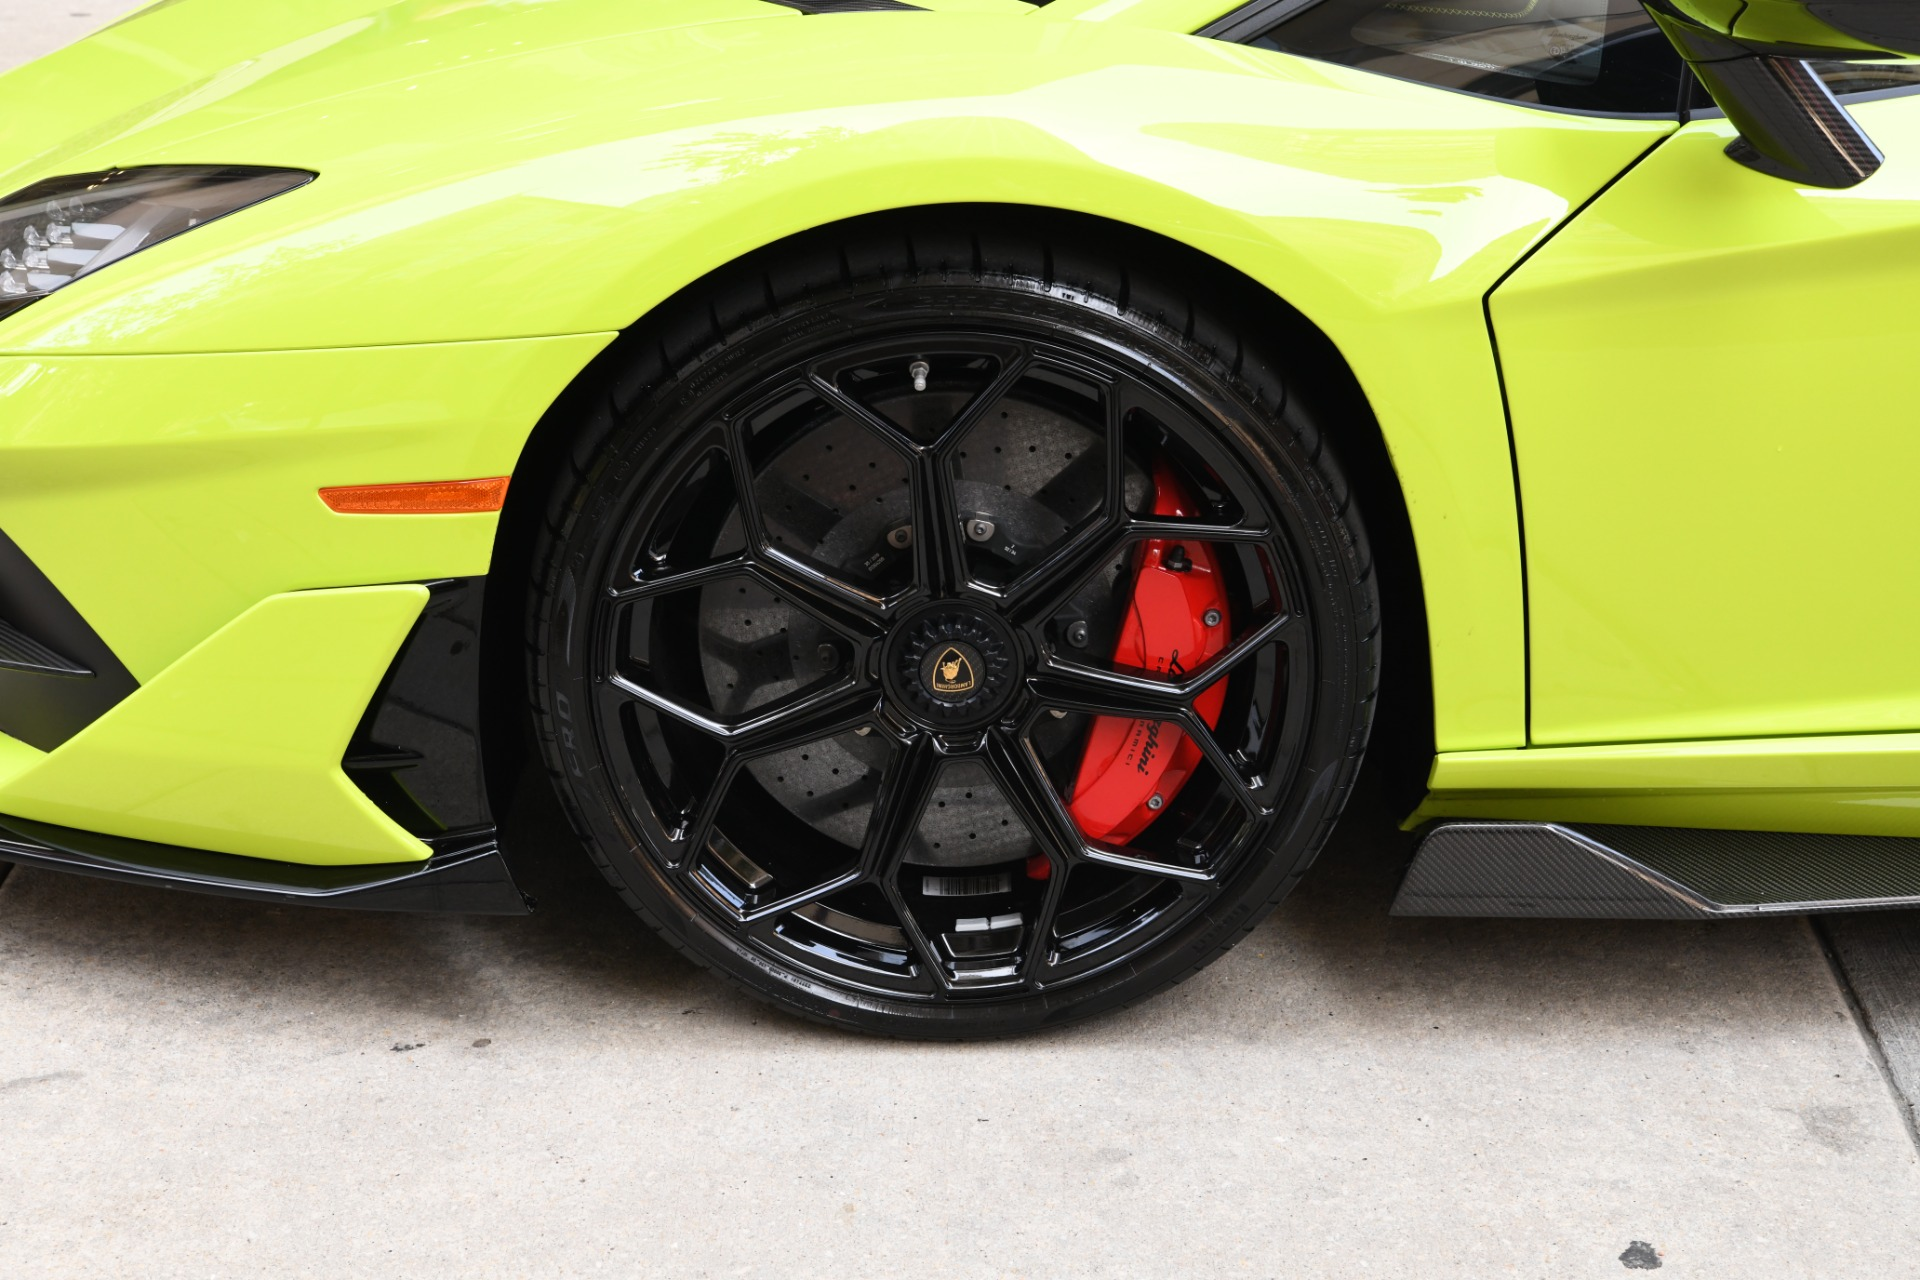 2020 lamborghini aventador svj lp 770 4 svj stock 09205 for sale near chicago il il lamborghini dealer 2020 lamborghini aventador svj lp 770 4